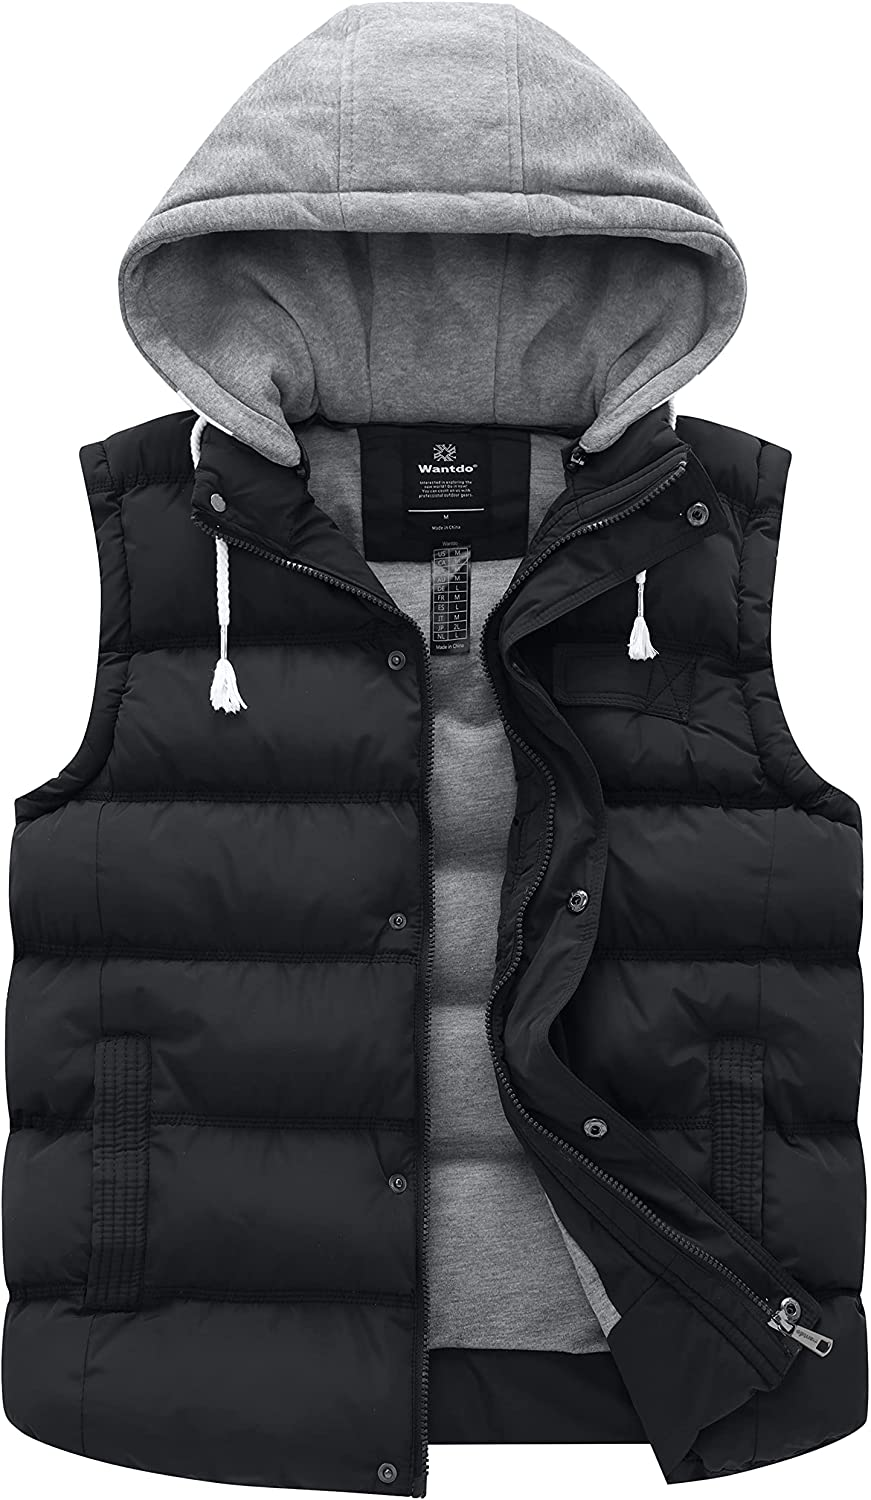 Wantdo Women's Quilted Puffer Vest Thicken Warm Winter Coat with Removable Hood